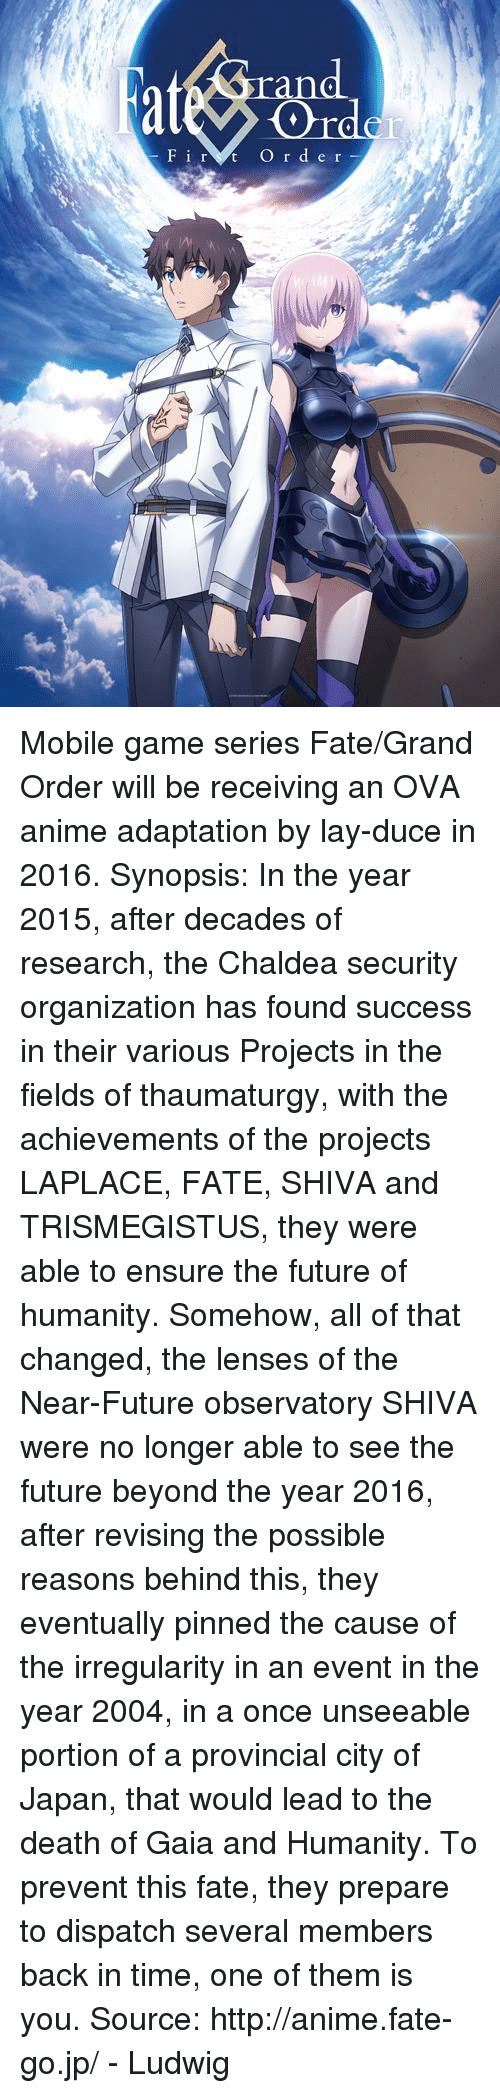 Animals, Dank, and Future: F i r  t O r d e r Mobile game series Fate/Grand Order will be receiving an OVA anime adaptation by lay-duce in 2016.   Synopsis: In the year 2015, after decades of research, the Chaldea security organization has found success in their various Projects in the fields of thaumaturgy, with the achievements of the projects LAPLACE, FATE, SHIVA and TRISMEGISTUS, they were able to ensure the future of humanity. Somehow, all of that changed, the lenses of the Near-Future observatory SHIVA were no longer able to see the future beyond the year 2016, after revising the possible reasons behind this, they eventually pinned the cause of the irregularity in an event in the year 2004, in a once unseeable portion of a provincial city of Japan, that would lead to the death of Gaia and Humanity. To prevent this fate, they prepare to dispatch several members back in time, one of them is you.  Source:  http://anime.fate-go.jp/  - Ludwig